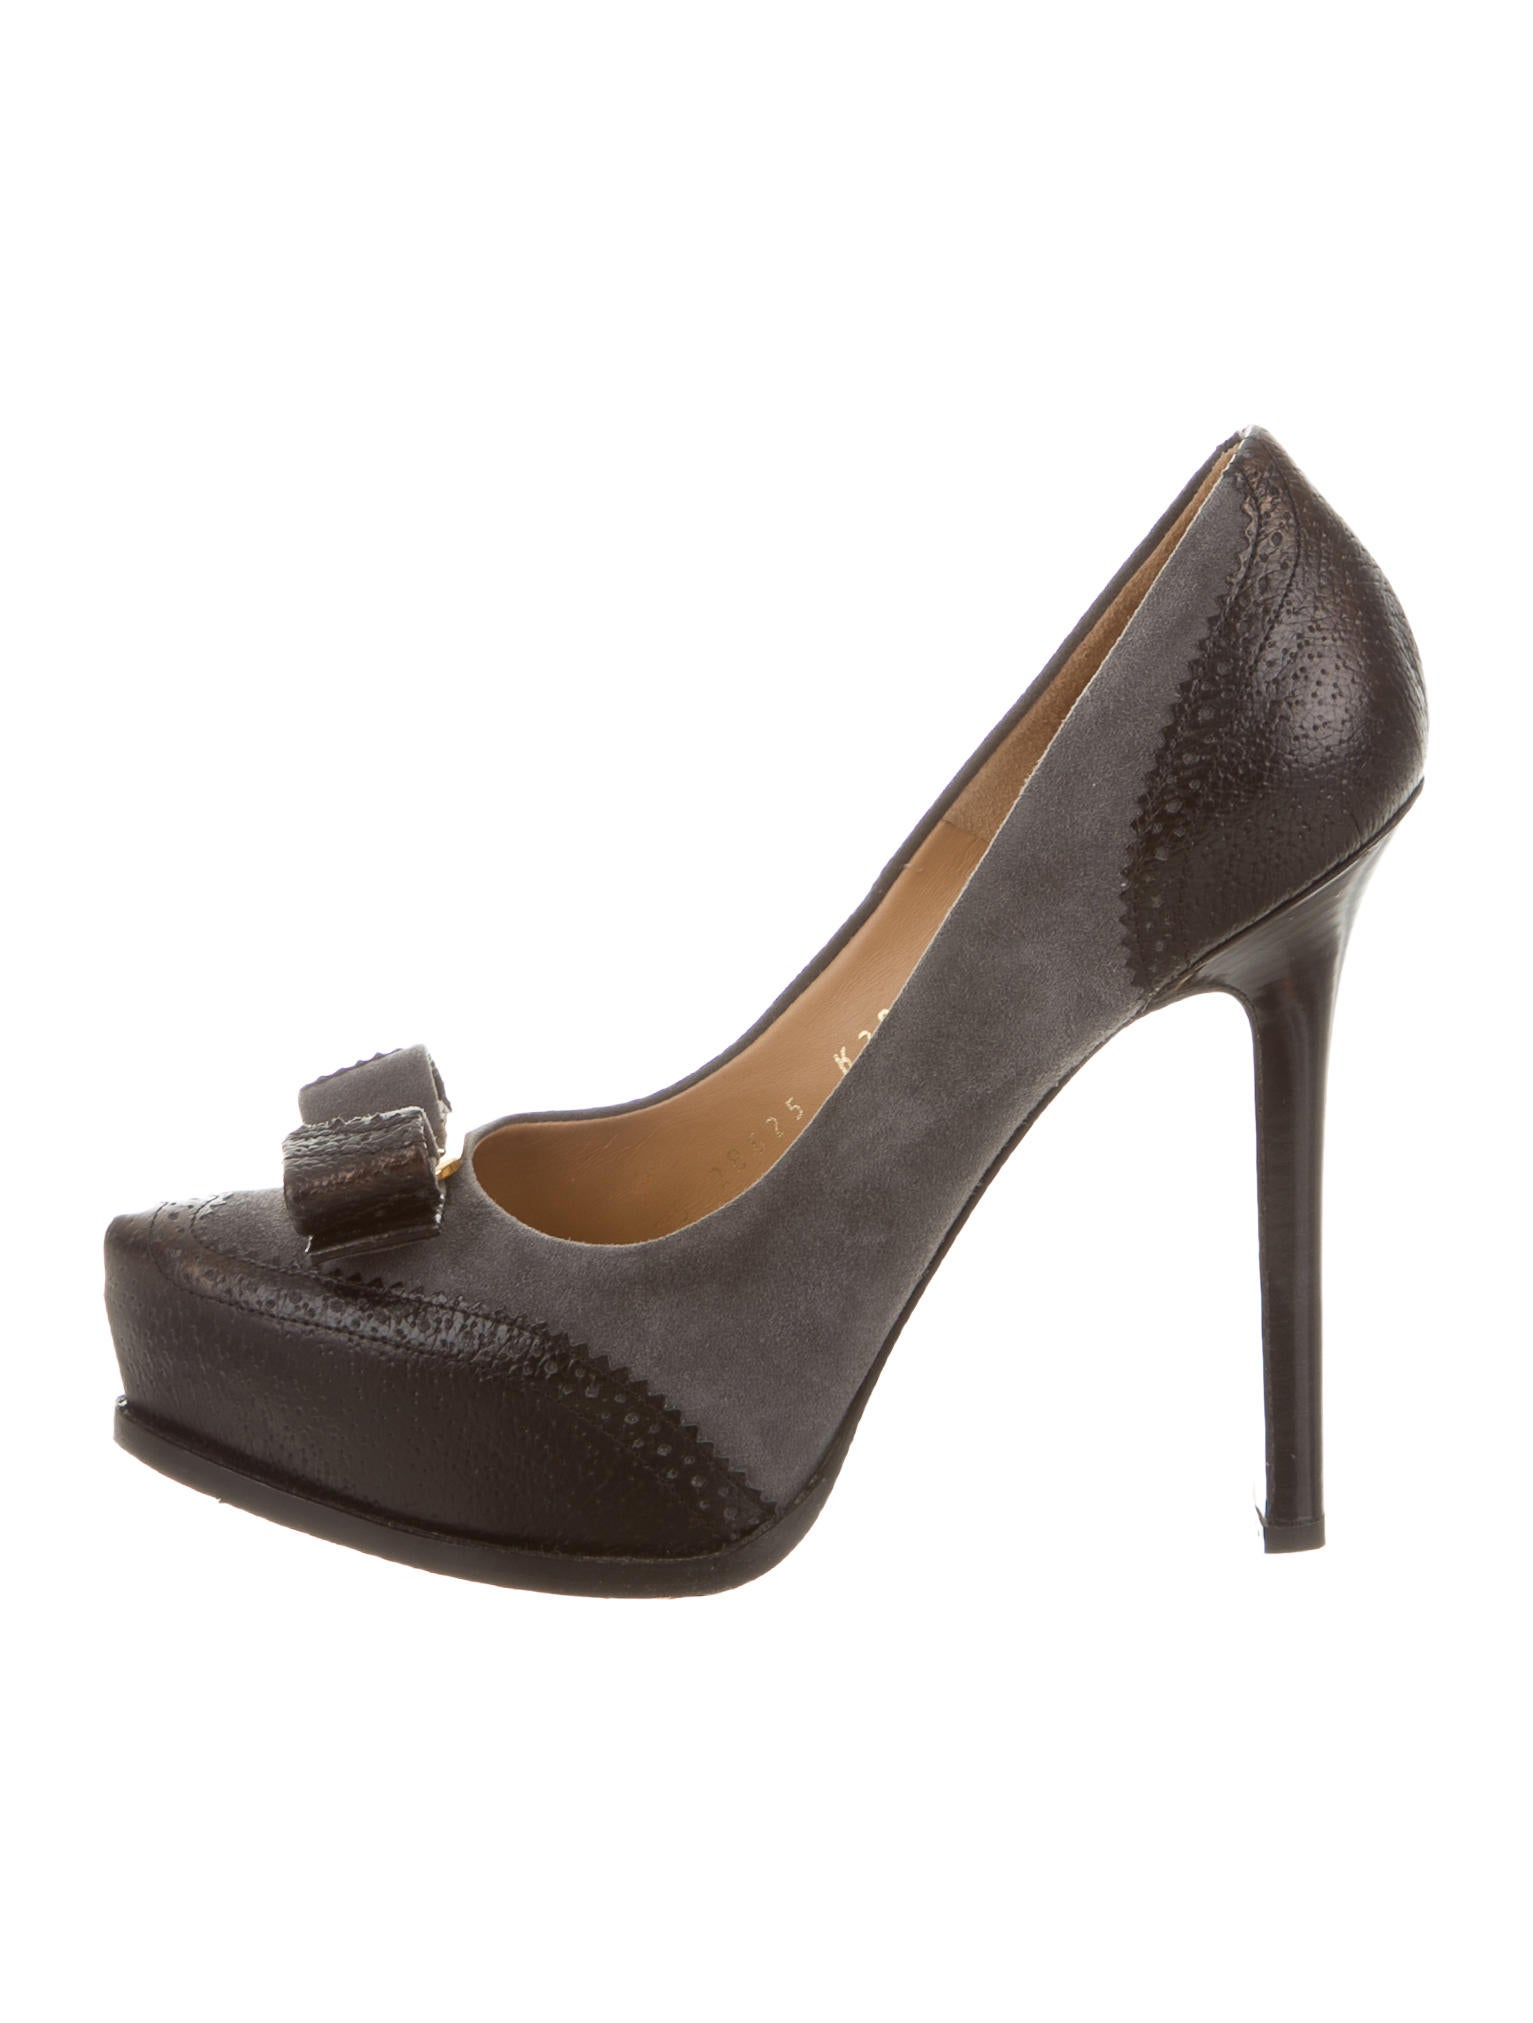 salvatore ferragamo suede platform pumps shoes sal38332 the realreal. Black Bedroom Furniture Sets. Home Design Ideas